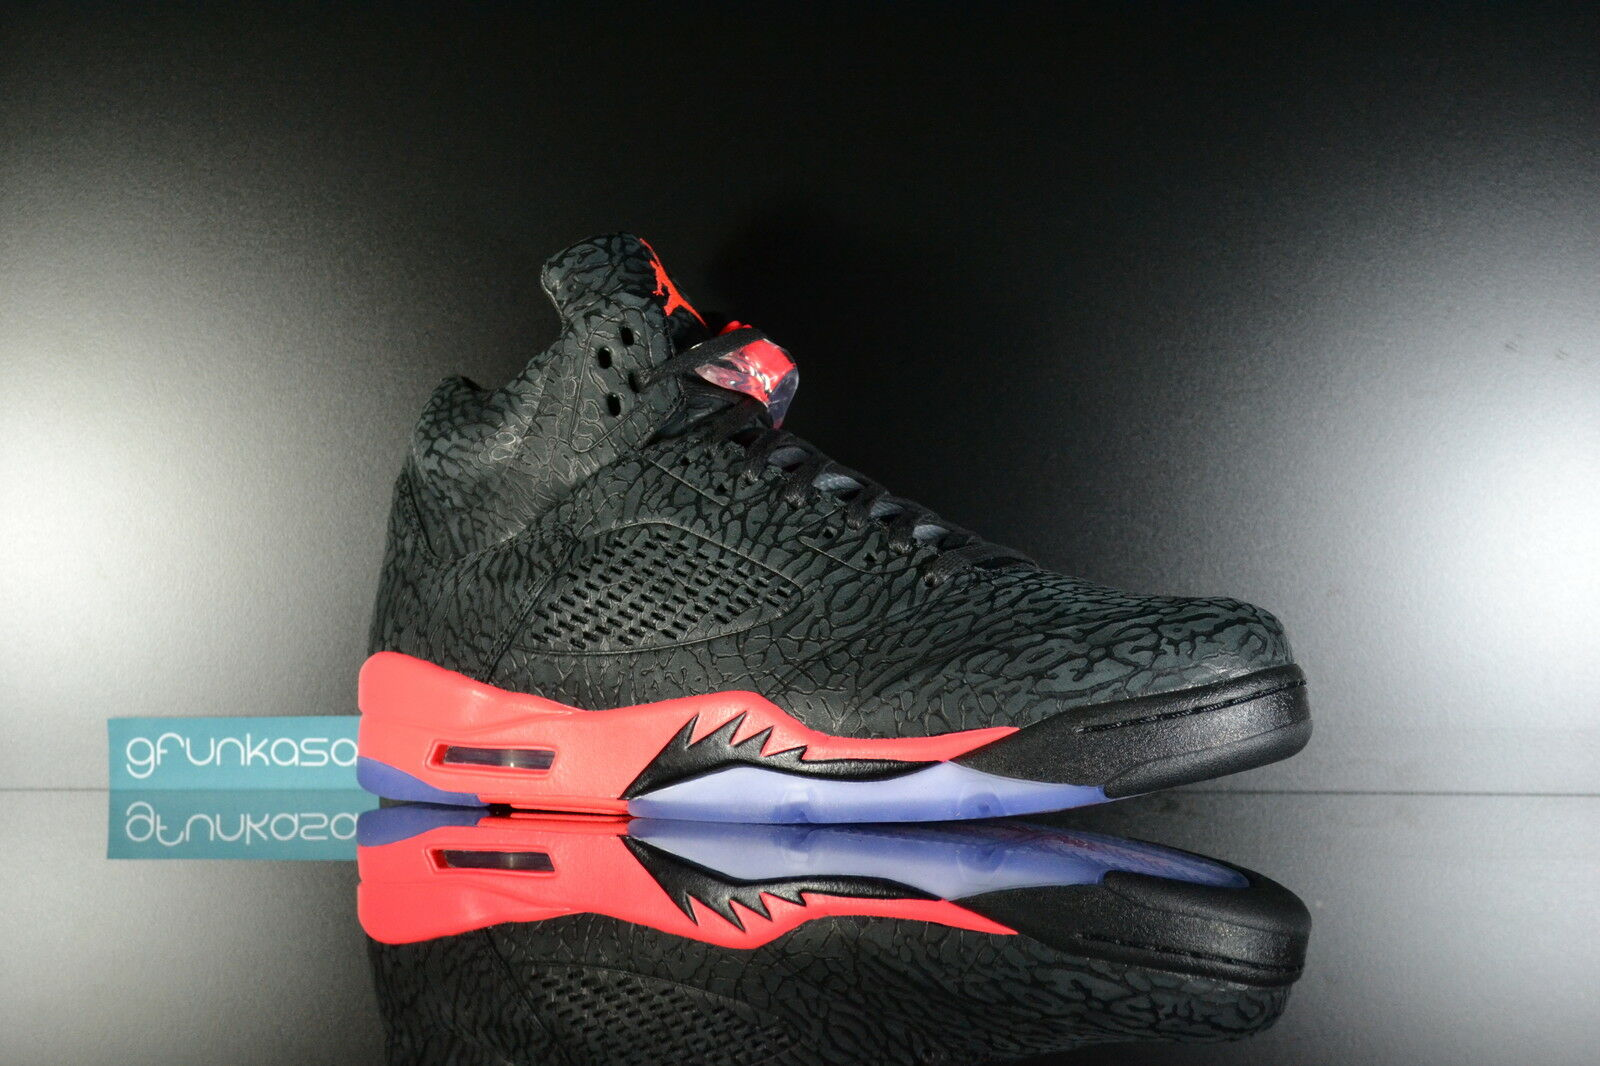 2014 Nike Air Jordan Retro 5 V 3Lab5 Infrared DS DS DS Size 10.5 Black Red Cement b63162